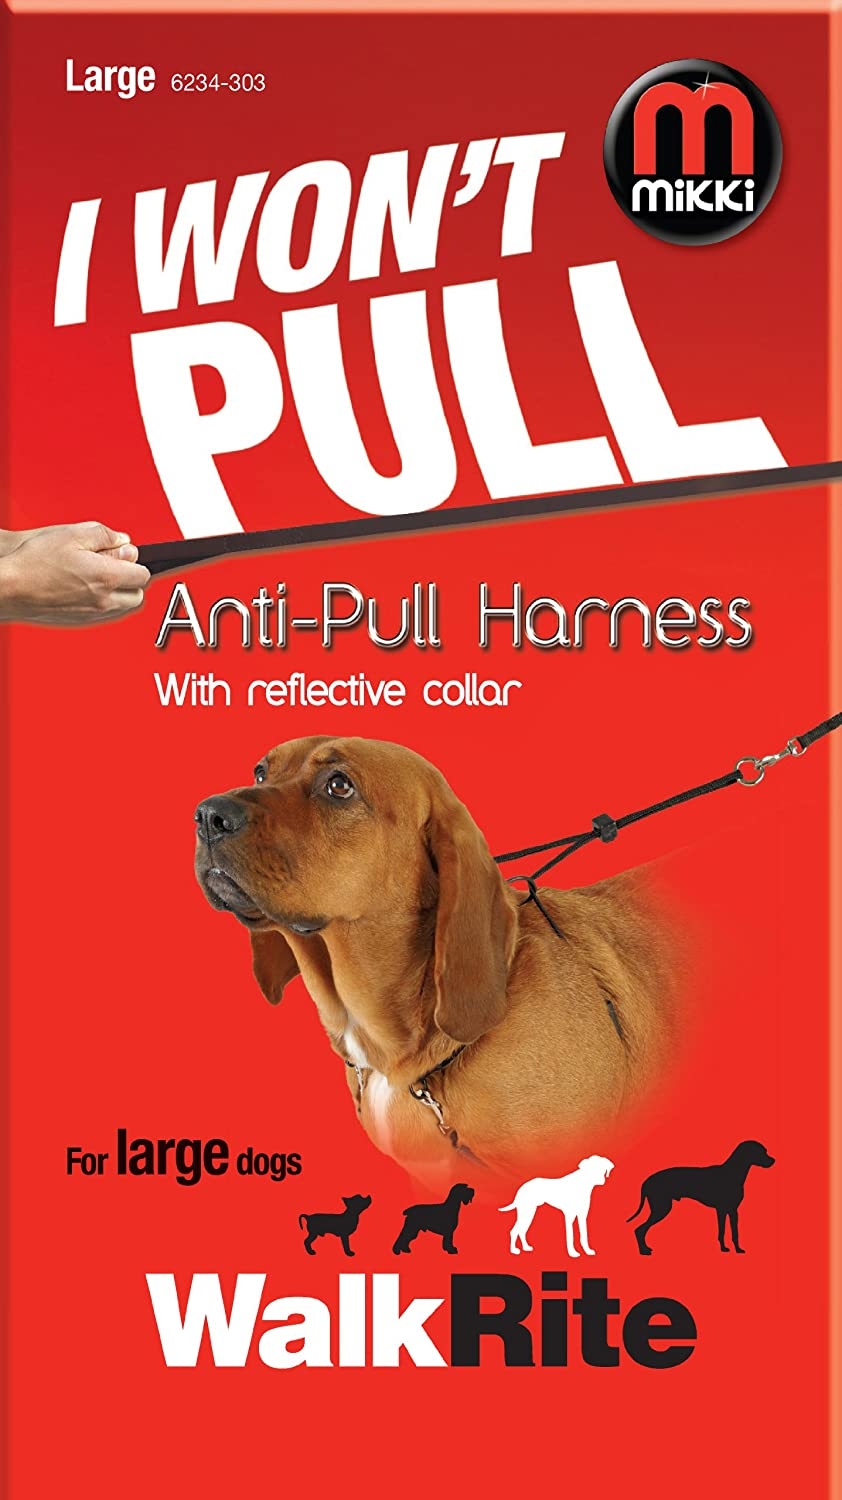 Mikki Training Anti-Pull Harness with Reflective Collar Large